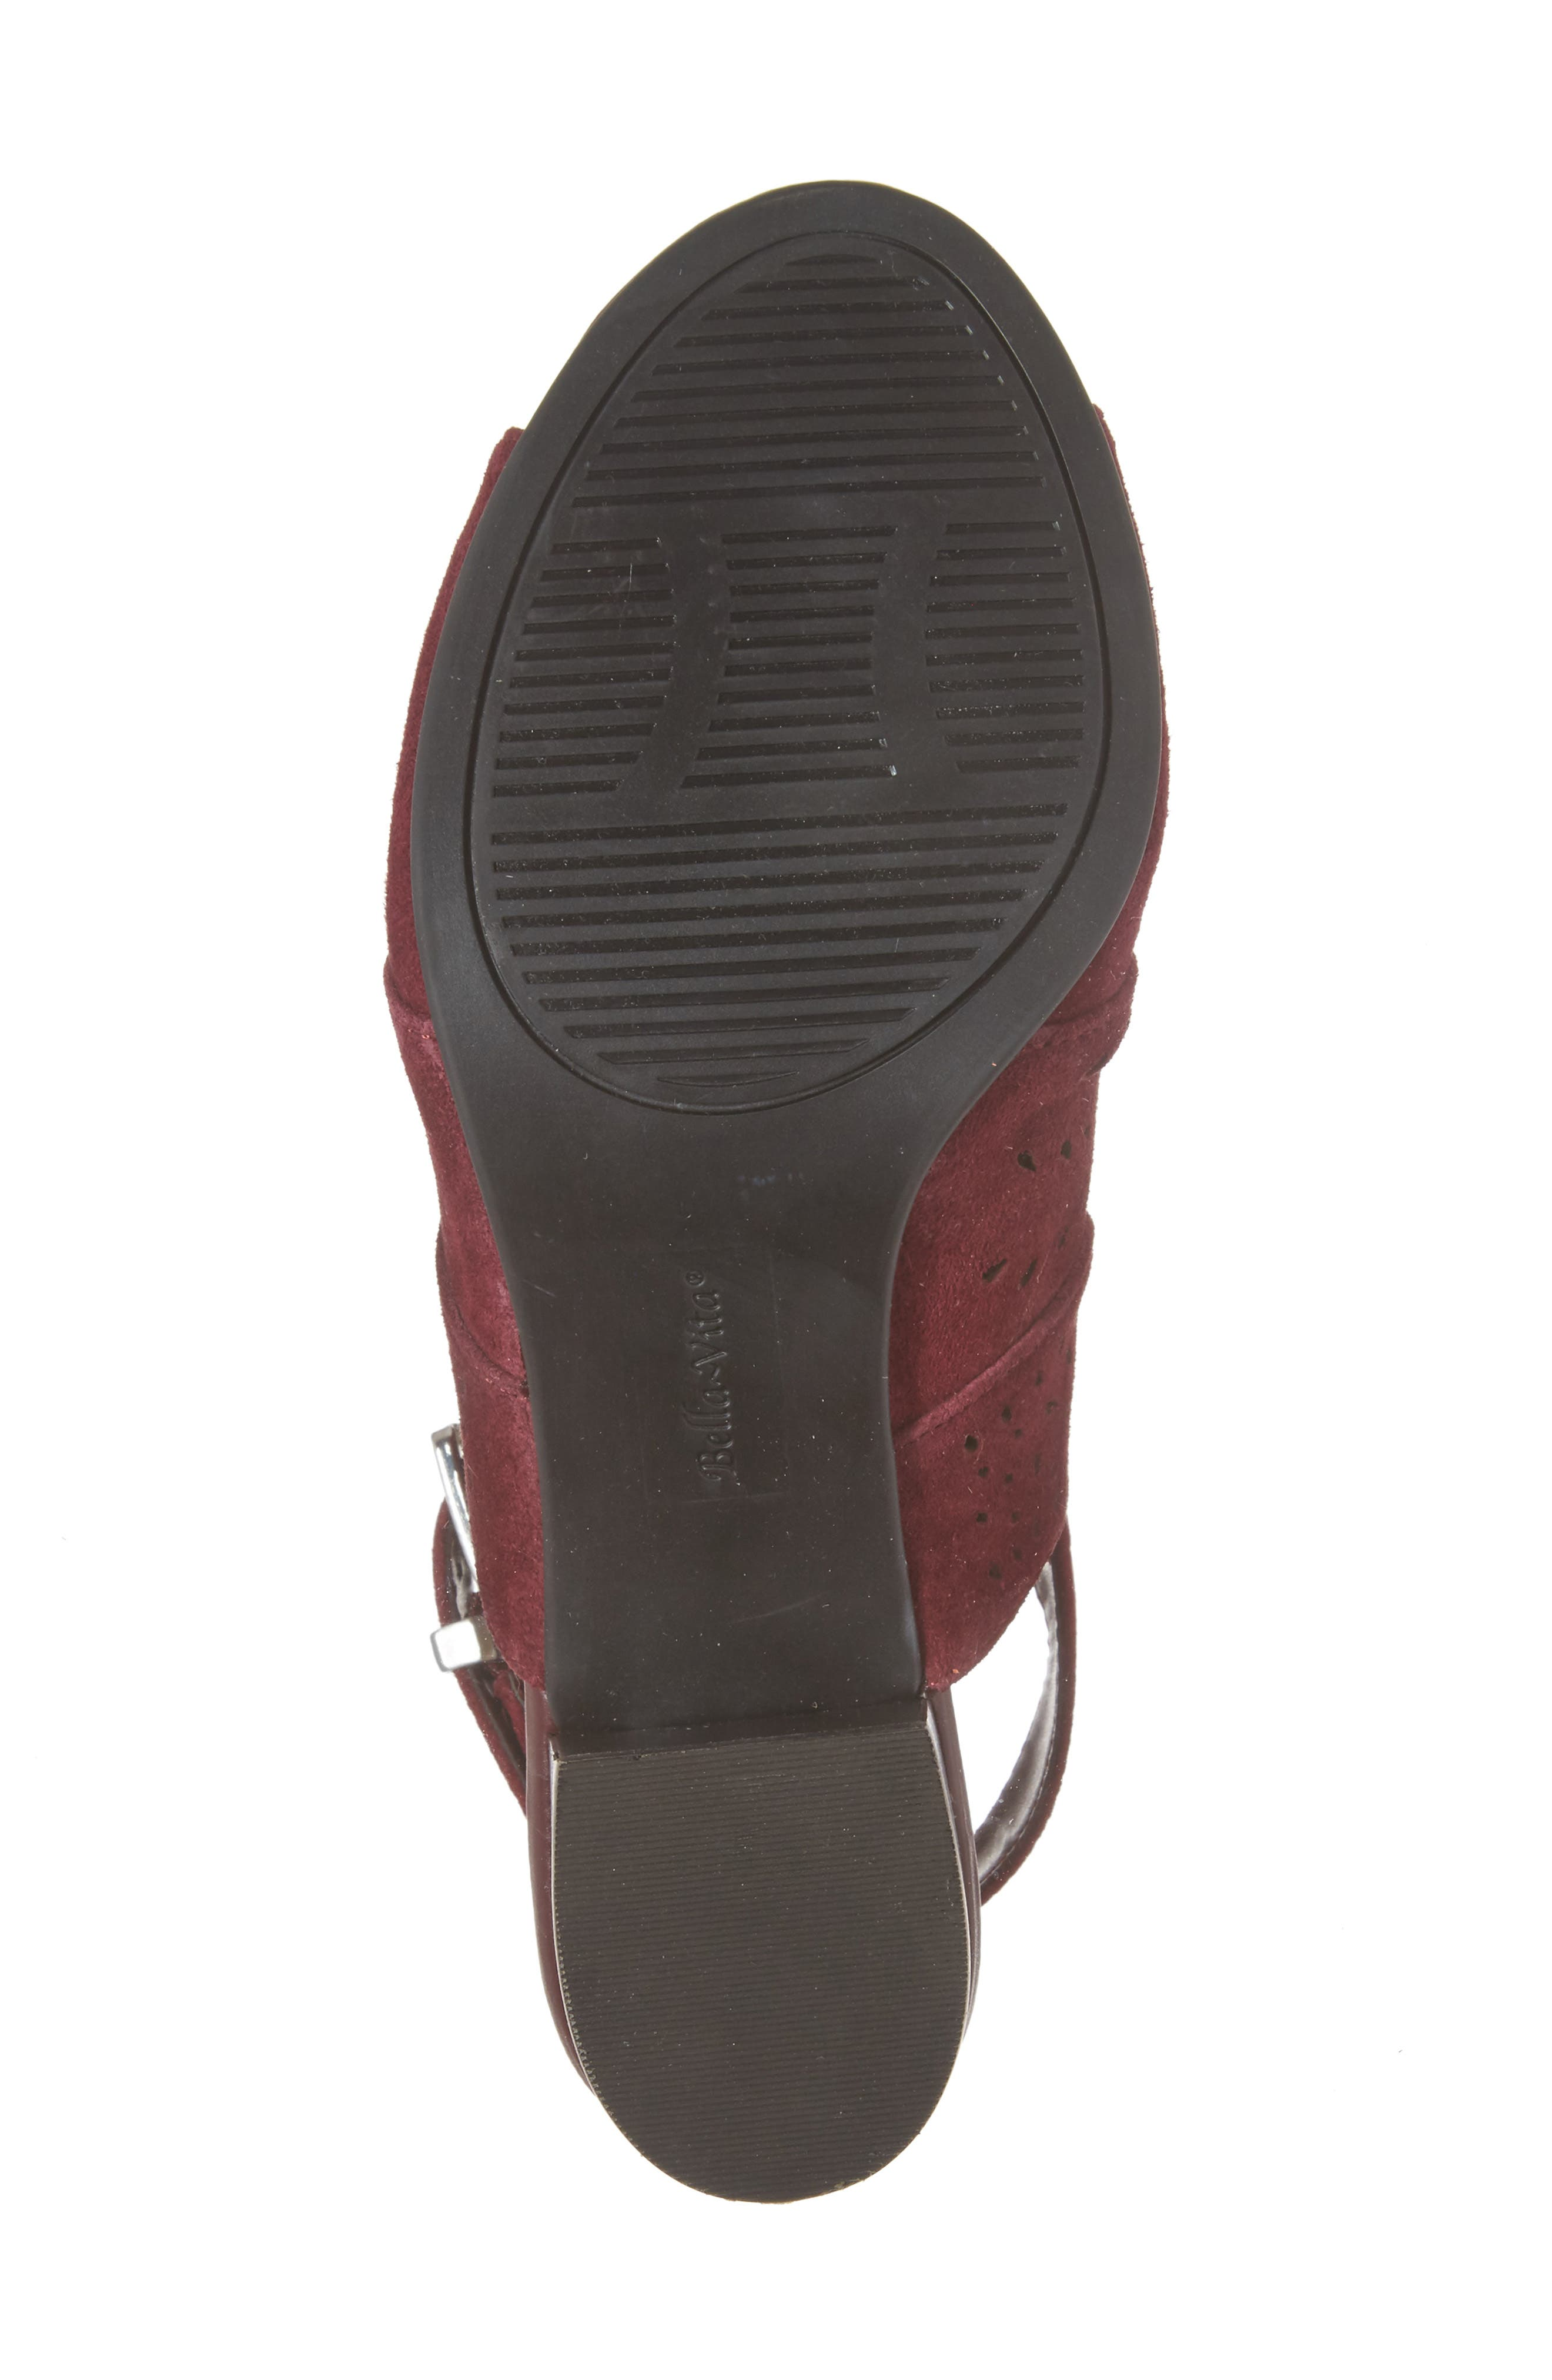 Fonda Perforated Sandal,                             Alternate thumbnail 6, color,                             Burgundy Suede